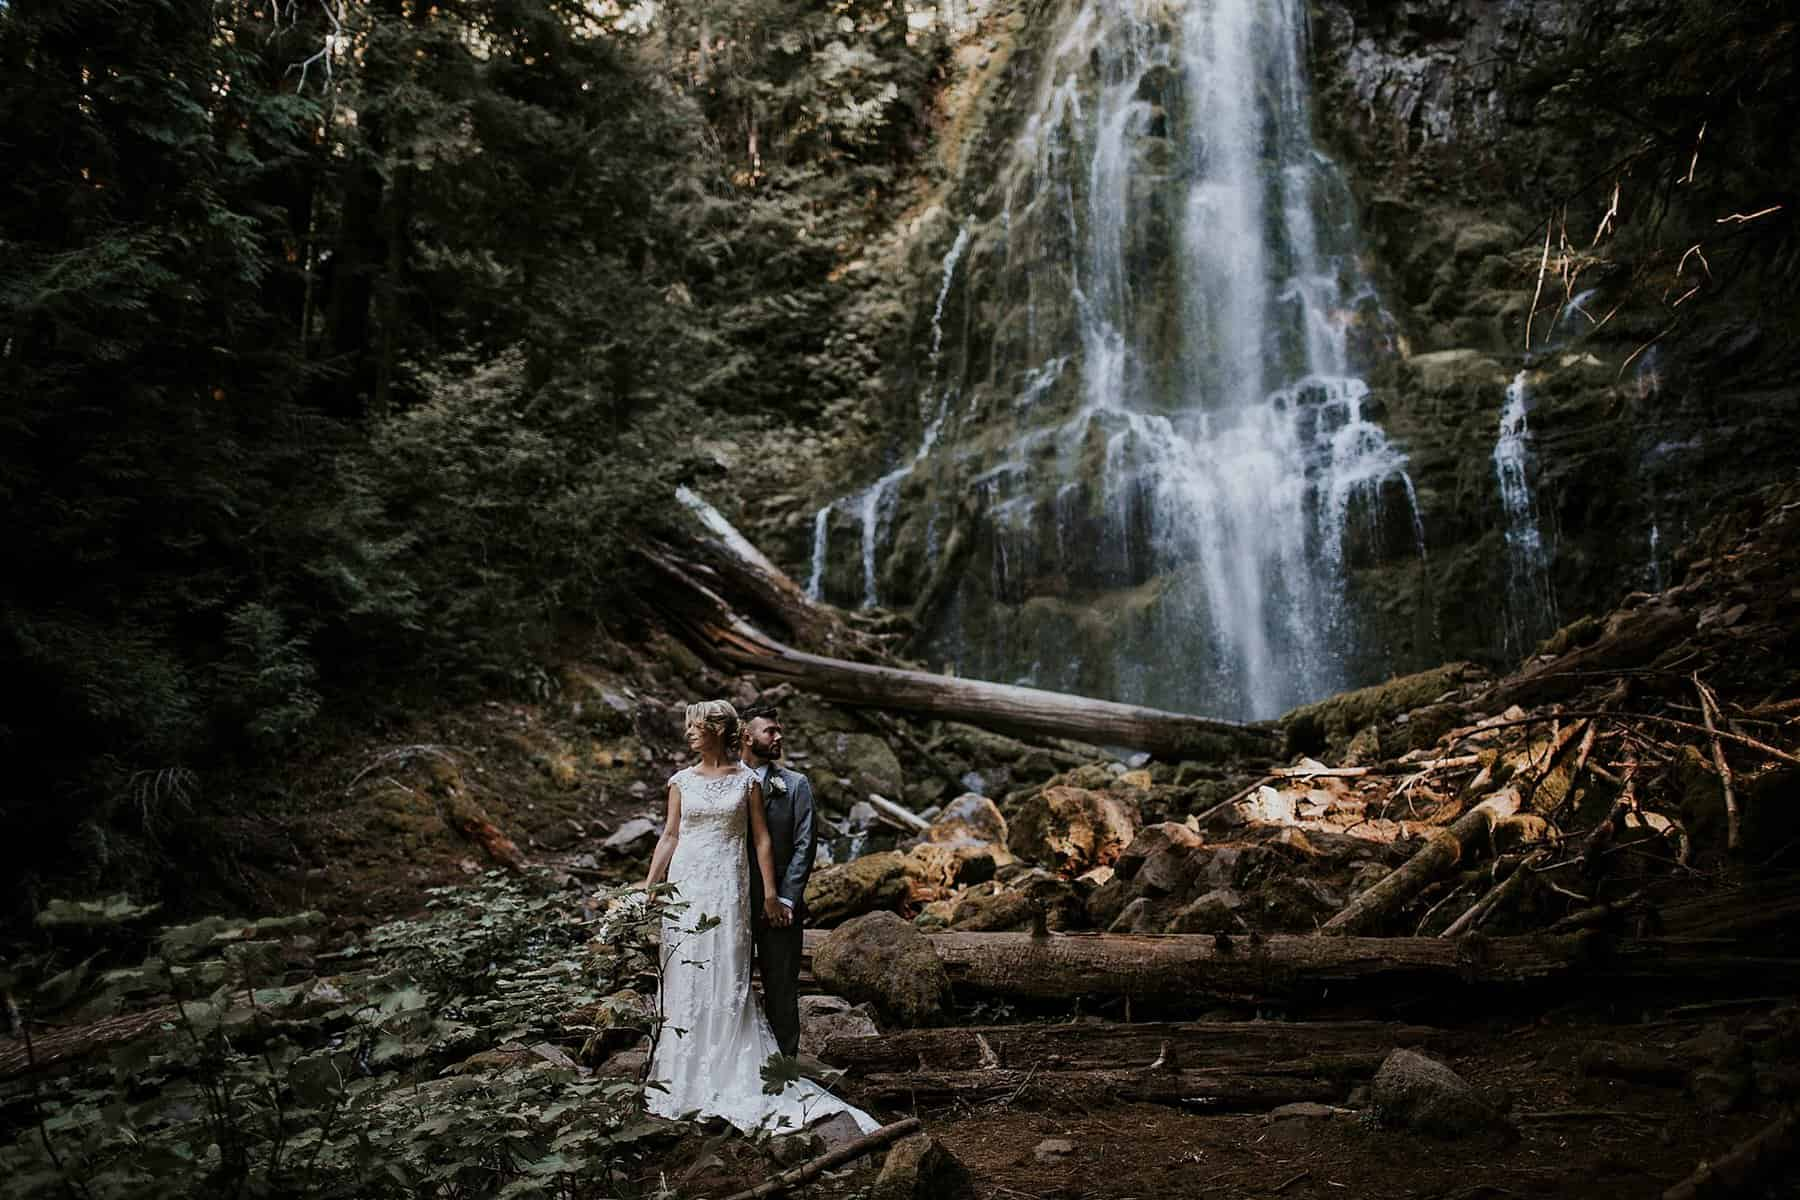 bend-central-oregon-waterfall-adventure-wedding-elopement-003